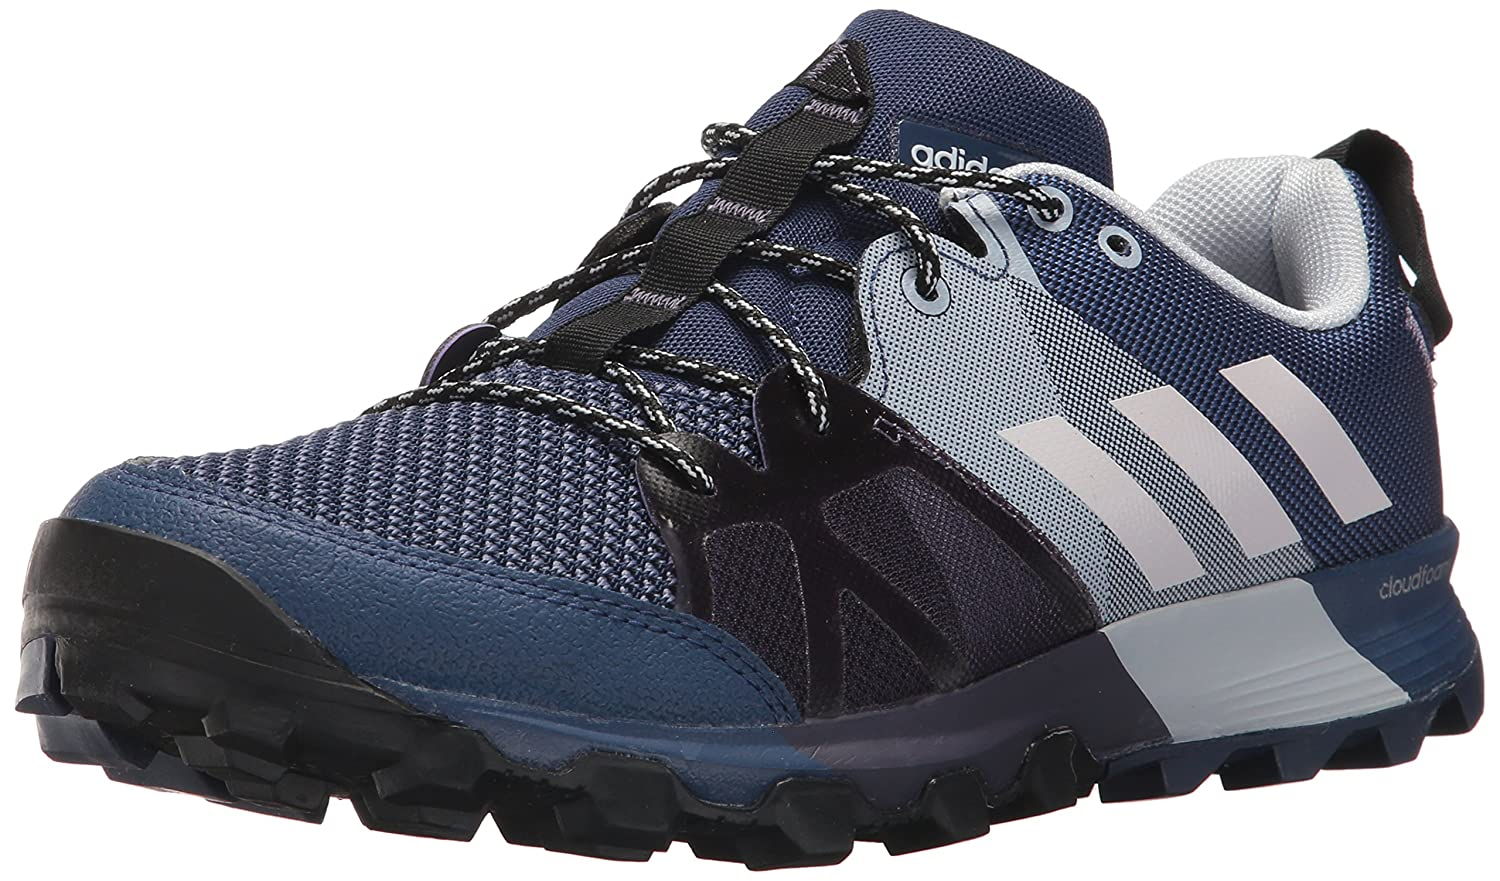 adidas outdoor Women's Kanadia 8.1 W Trail Running Shoe B072YWWSG6 10 B(M) US|Noble Indigo/Orchid Tint/Aero Blue